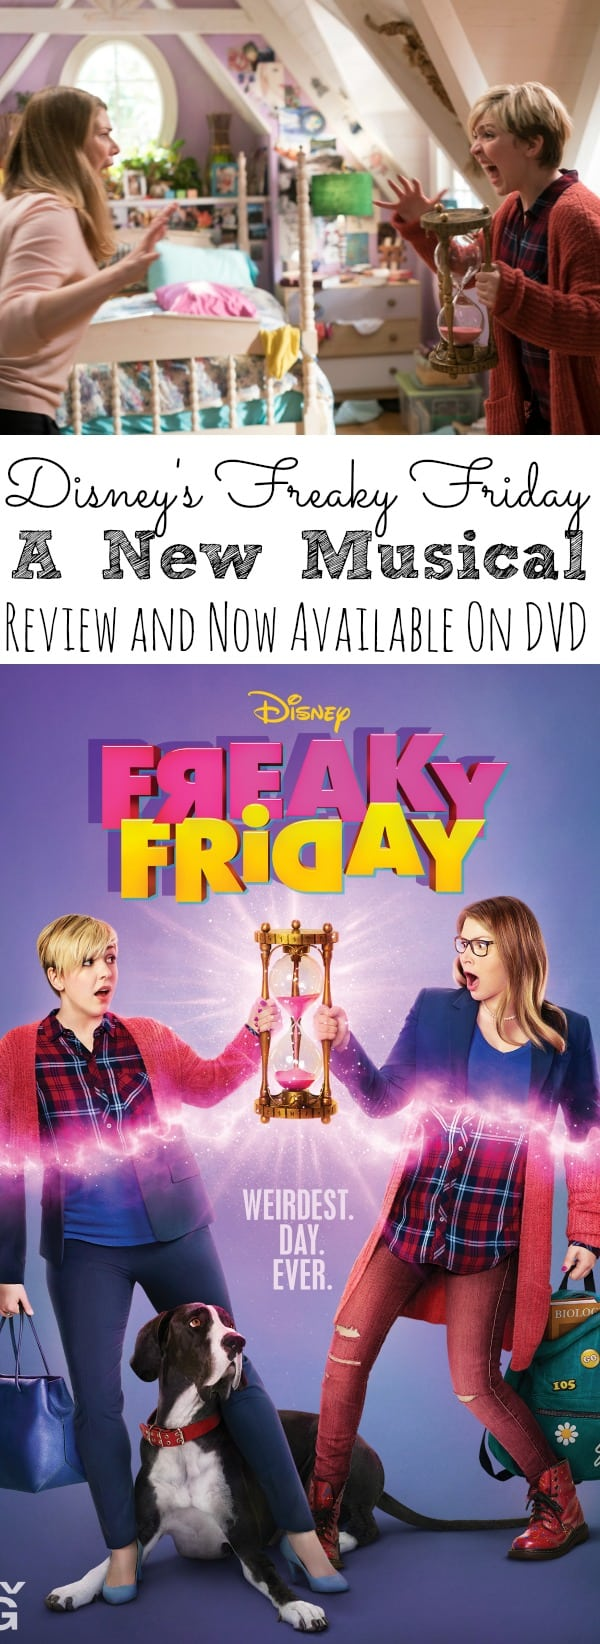 Freaky Friday_ A New Musical Now On DVD - simplytodaylife.com